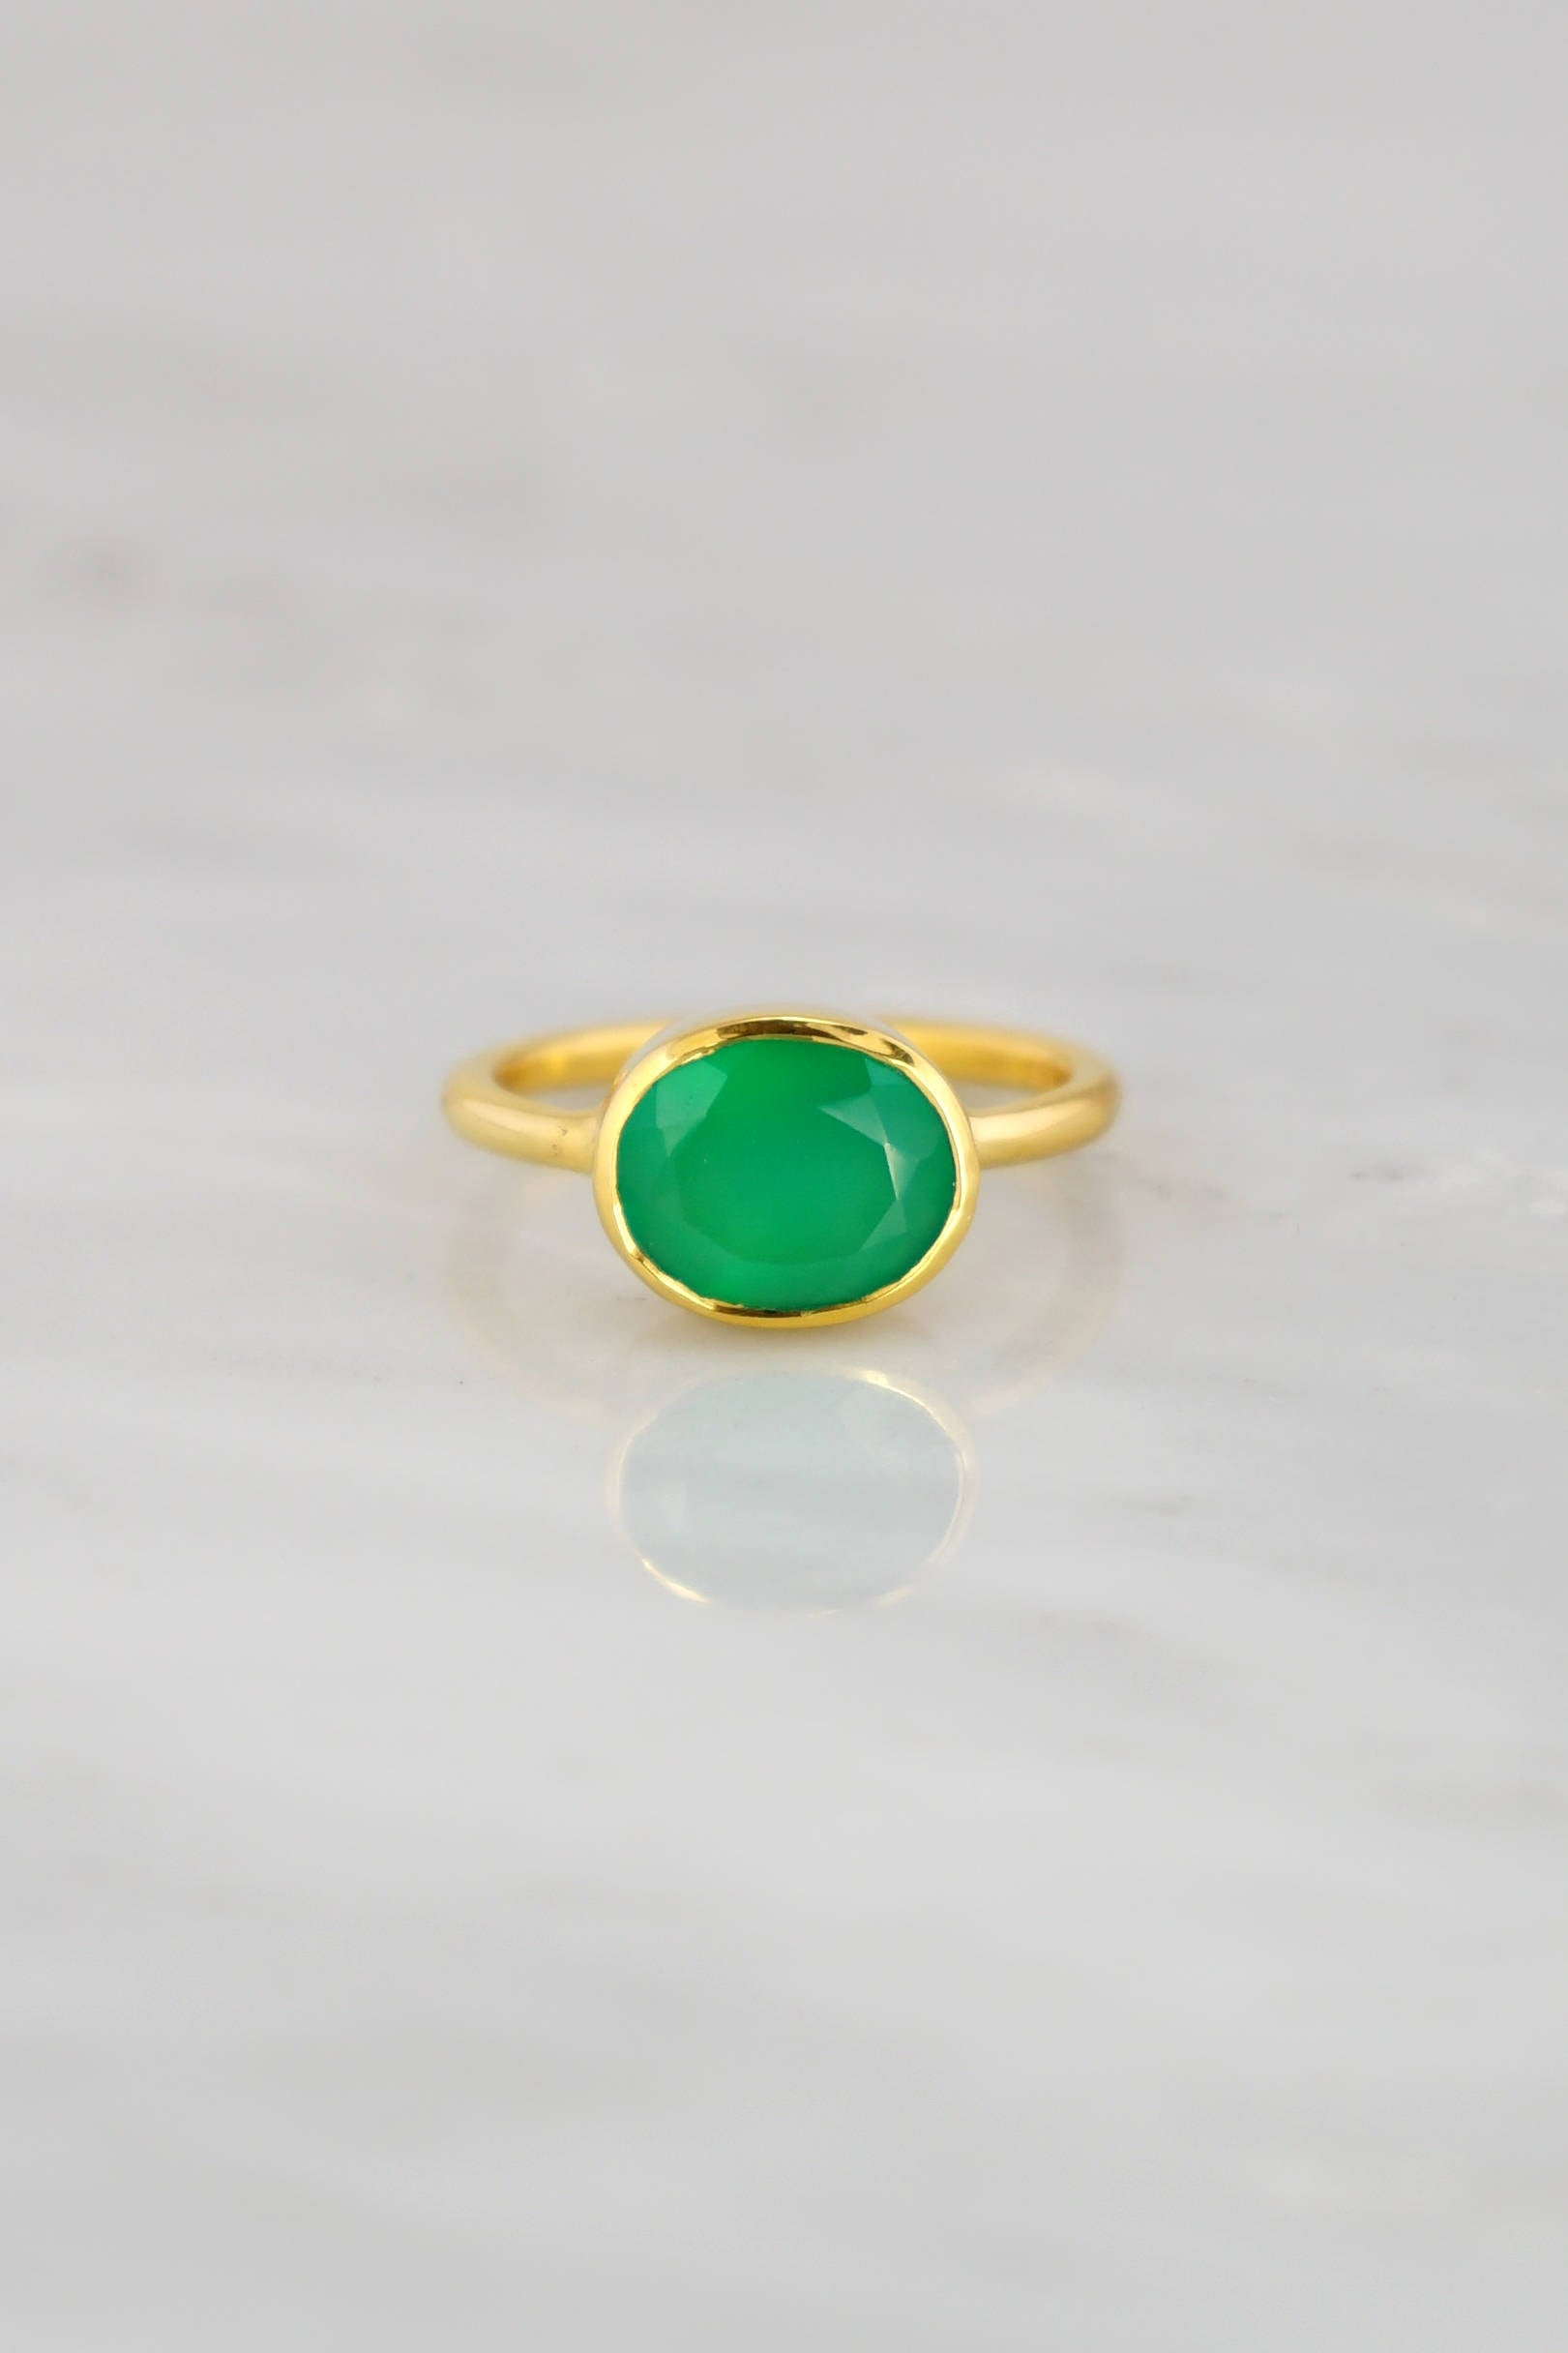 Emerald Green Ring, Green Emerald Color Ring, Dark Green Rings, Oval Green Ring, Gemstone Ring,Bezel set Oval ring, Stackable Gold Ring